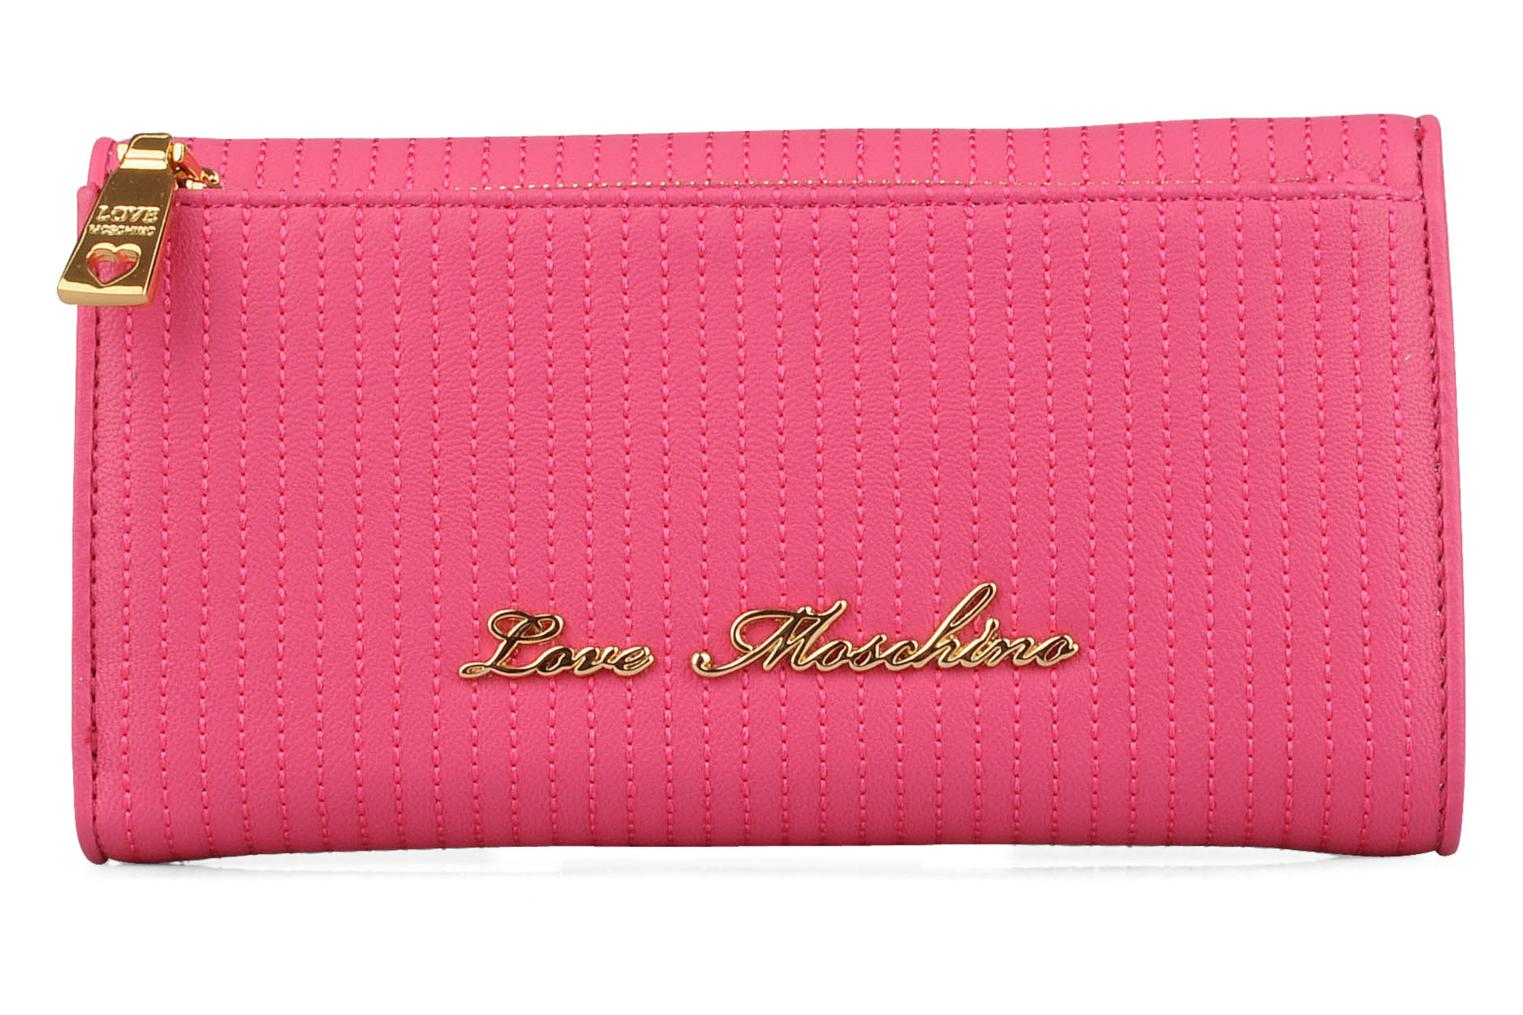 Petite Maroquinerie Love Moschino Mosquilted large double zipper Rose vue face